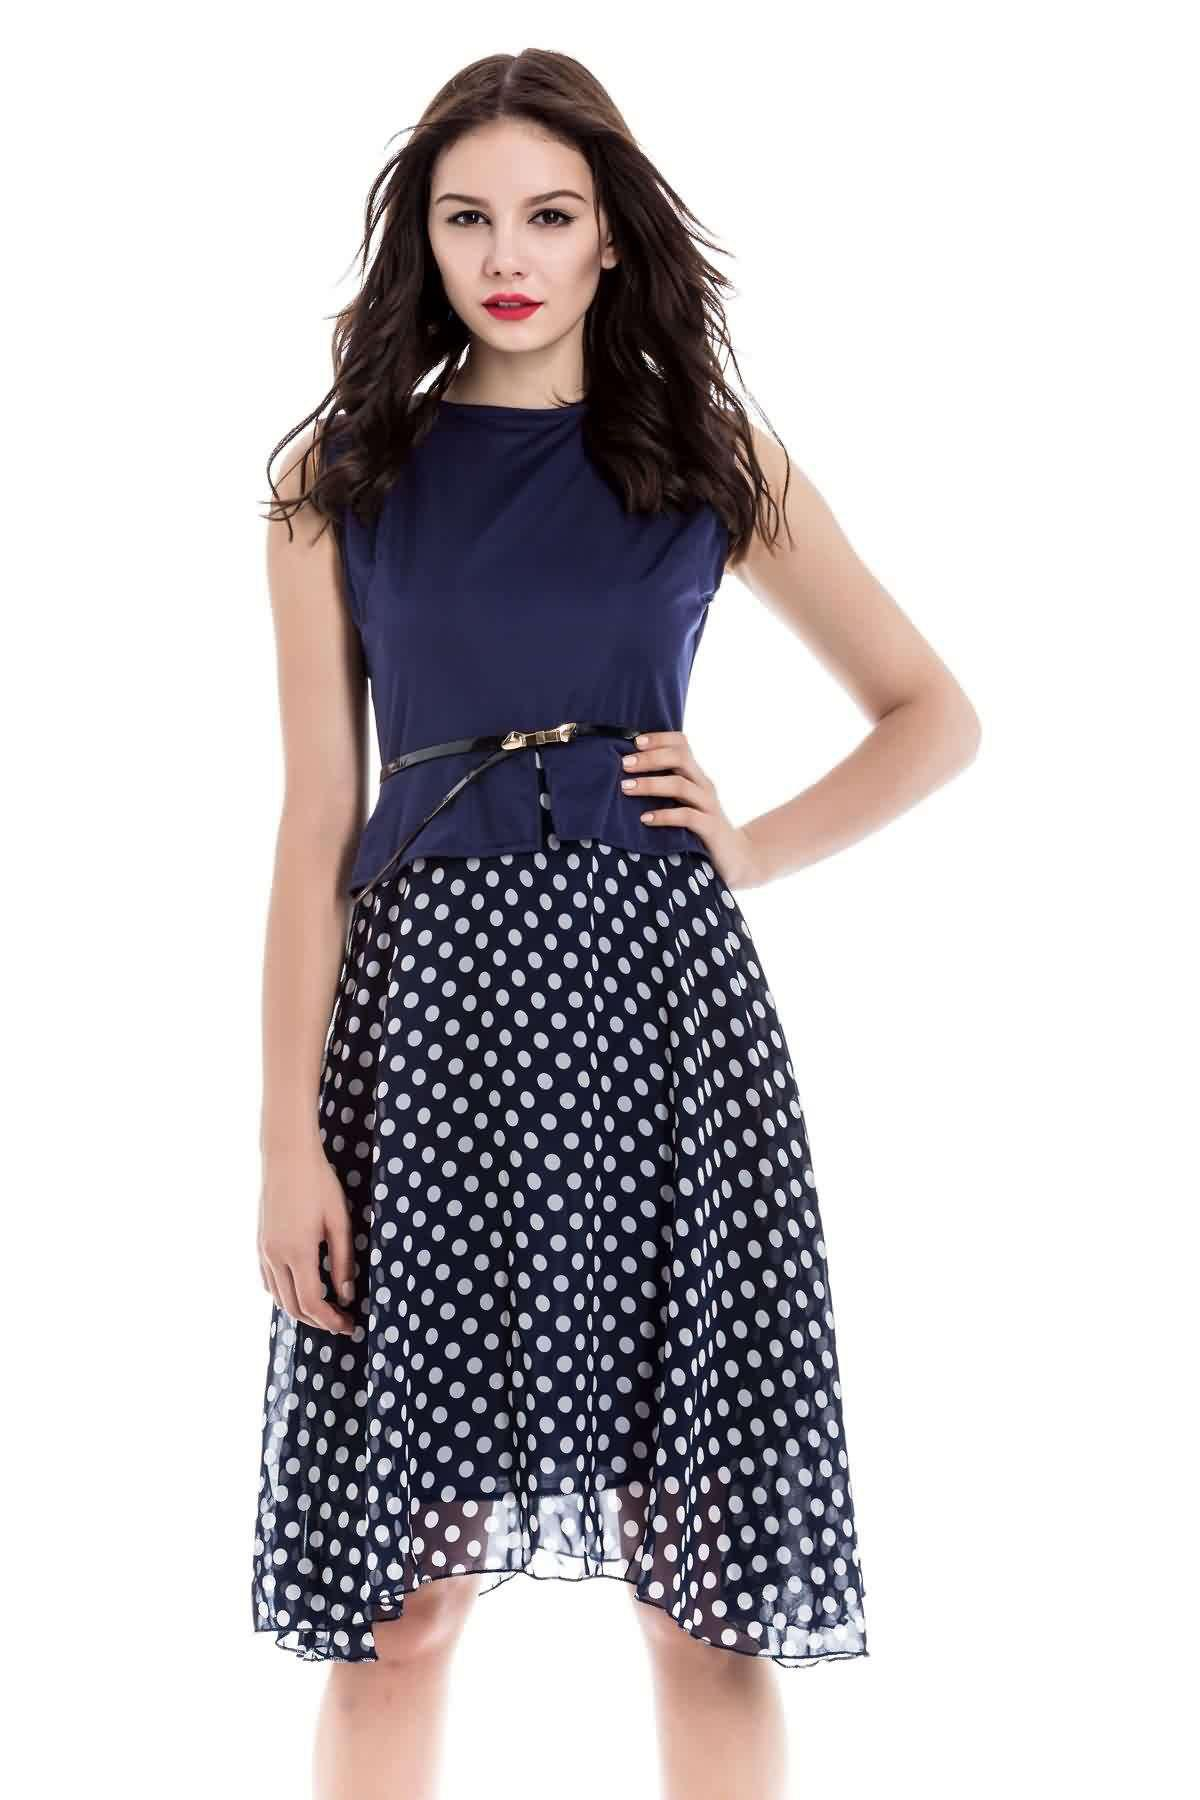 Trendy Sleeveless Round Collar Belt Design Polka Dot Print Knee-Length Dress - CADETBLUE S